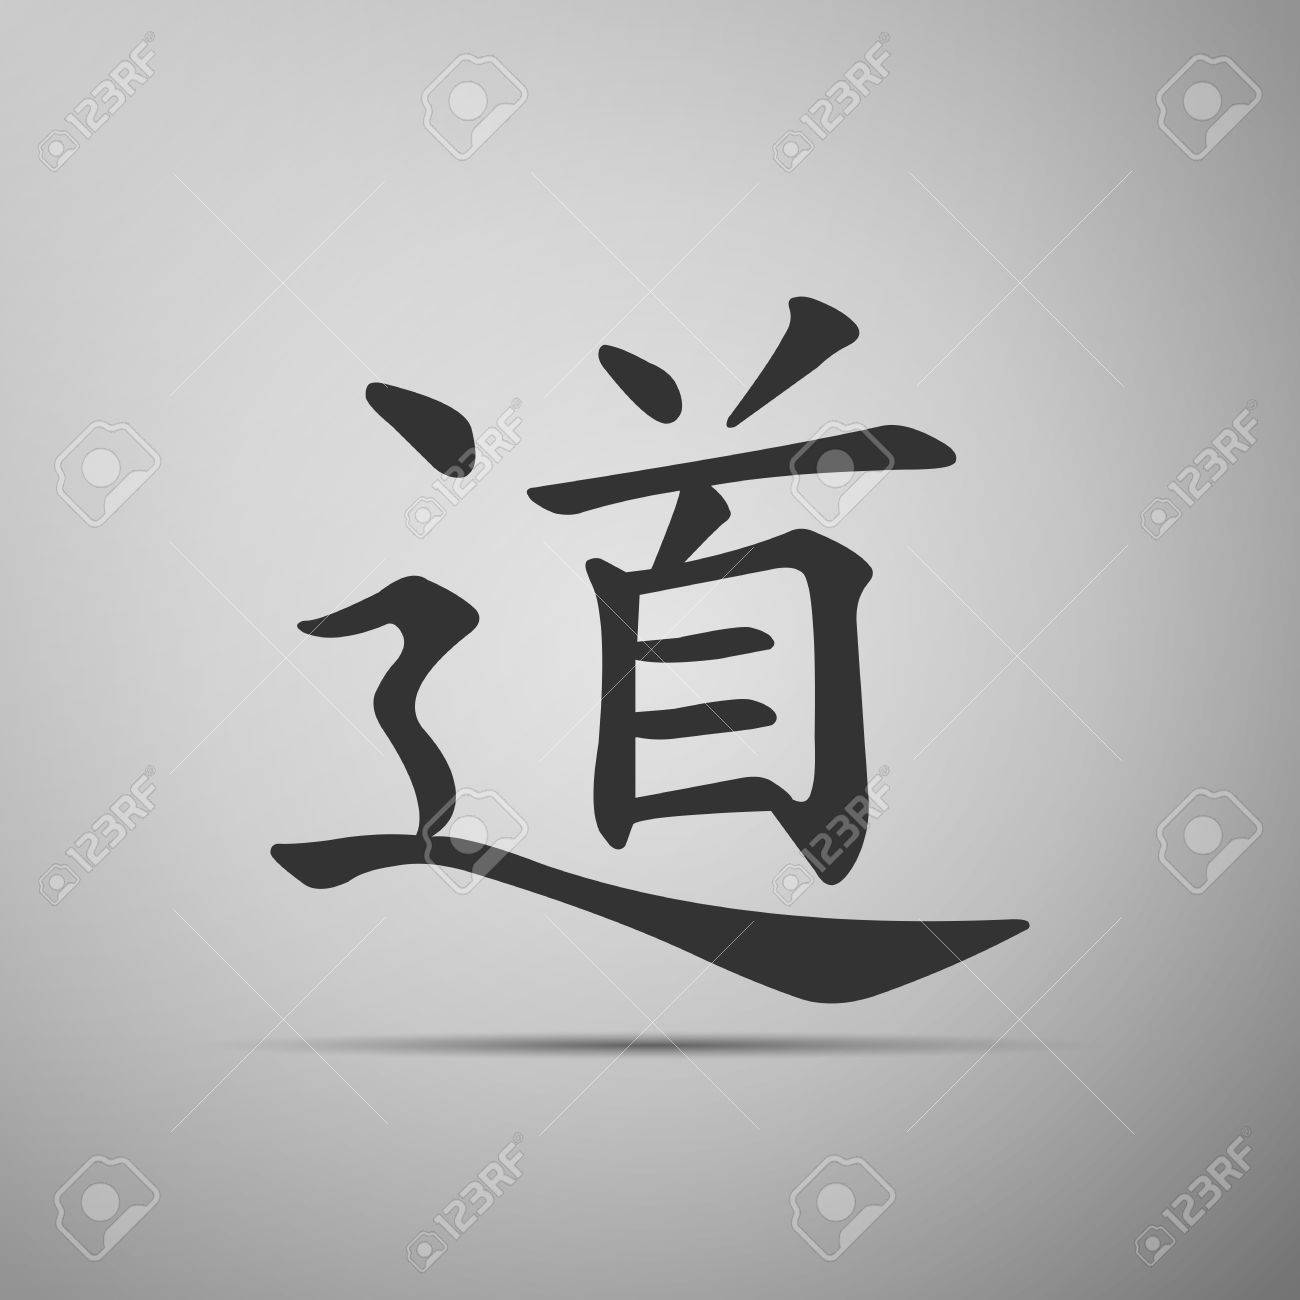 Chinese Calligraphy Translation Meaning Dao Tao Taoism Icon